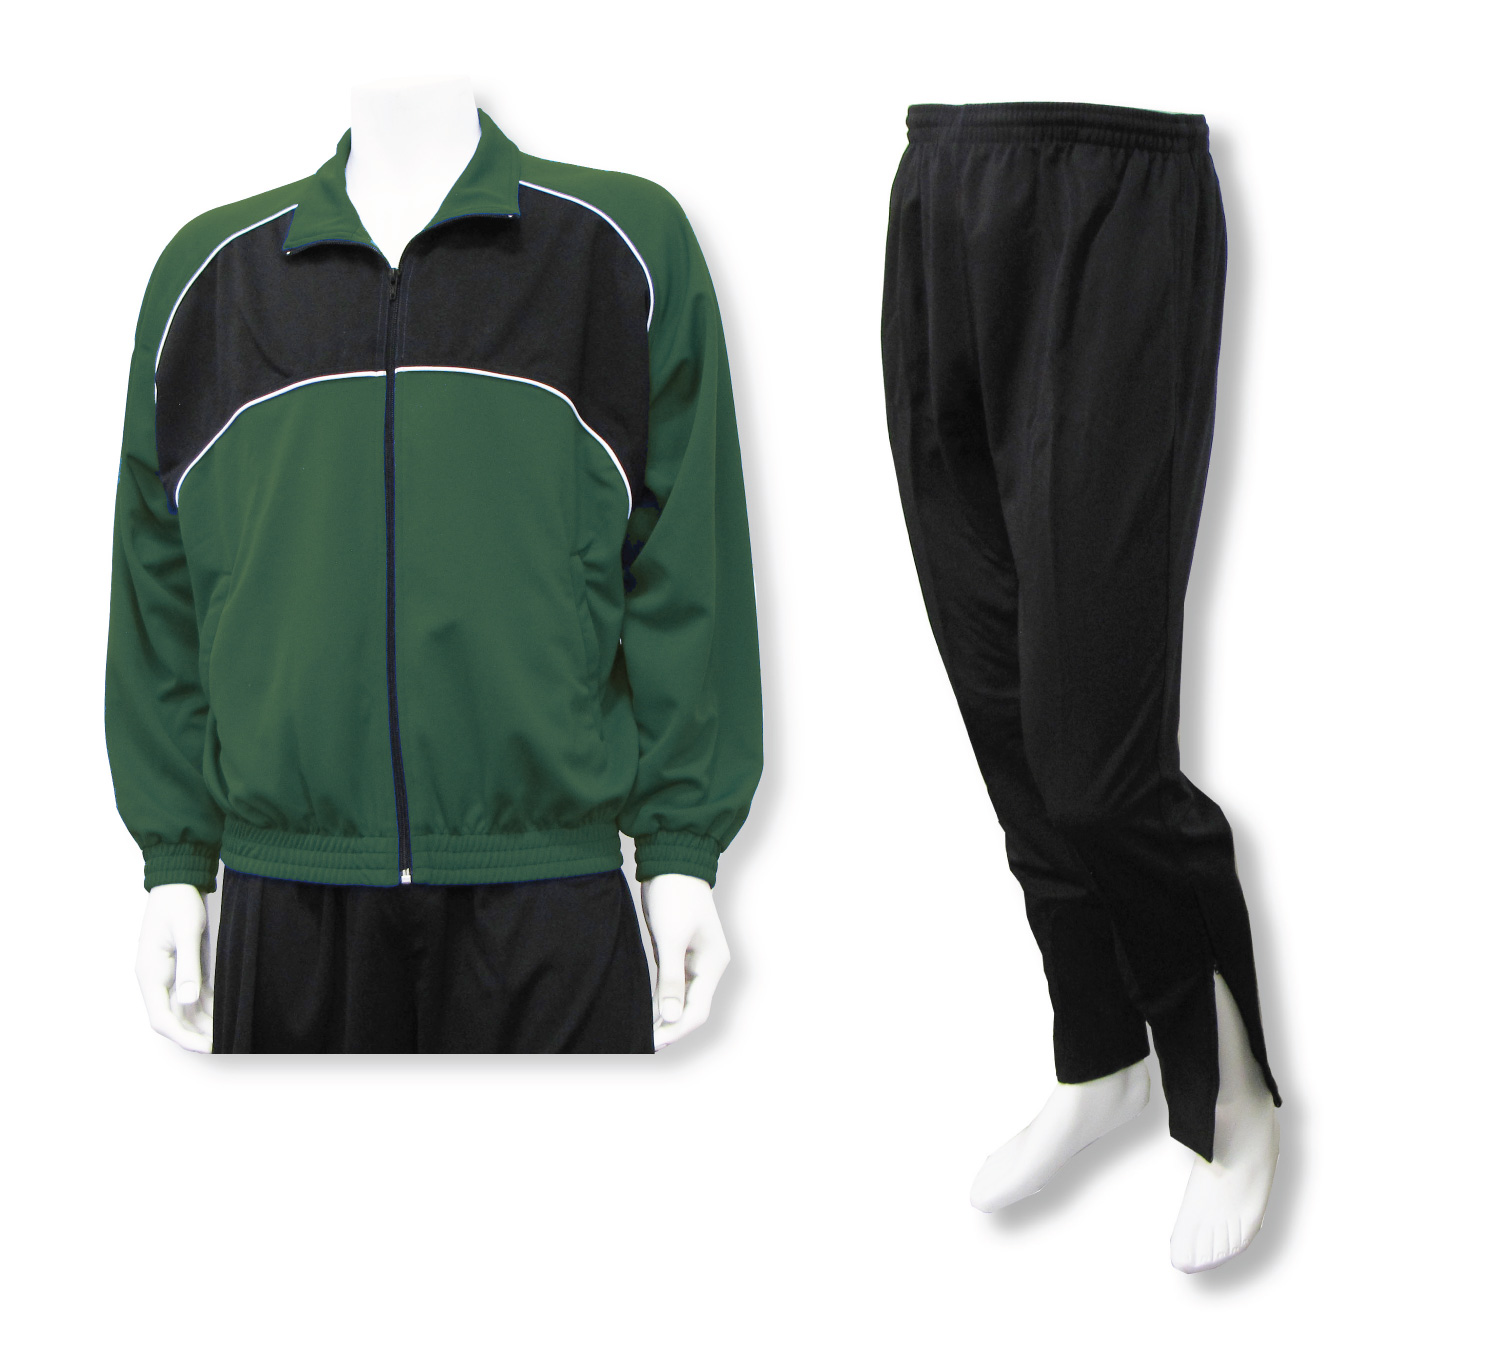 Crossfire soccer warmup set in forest/black by Code Four Athletics